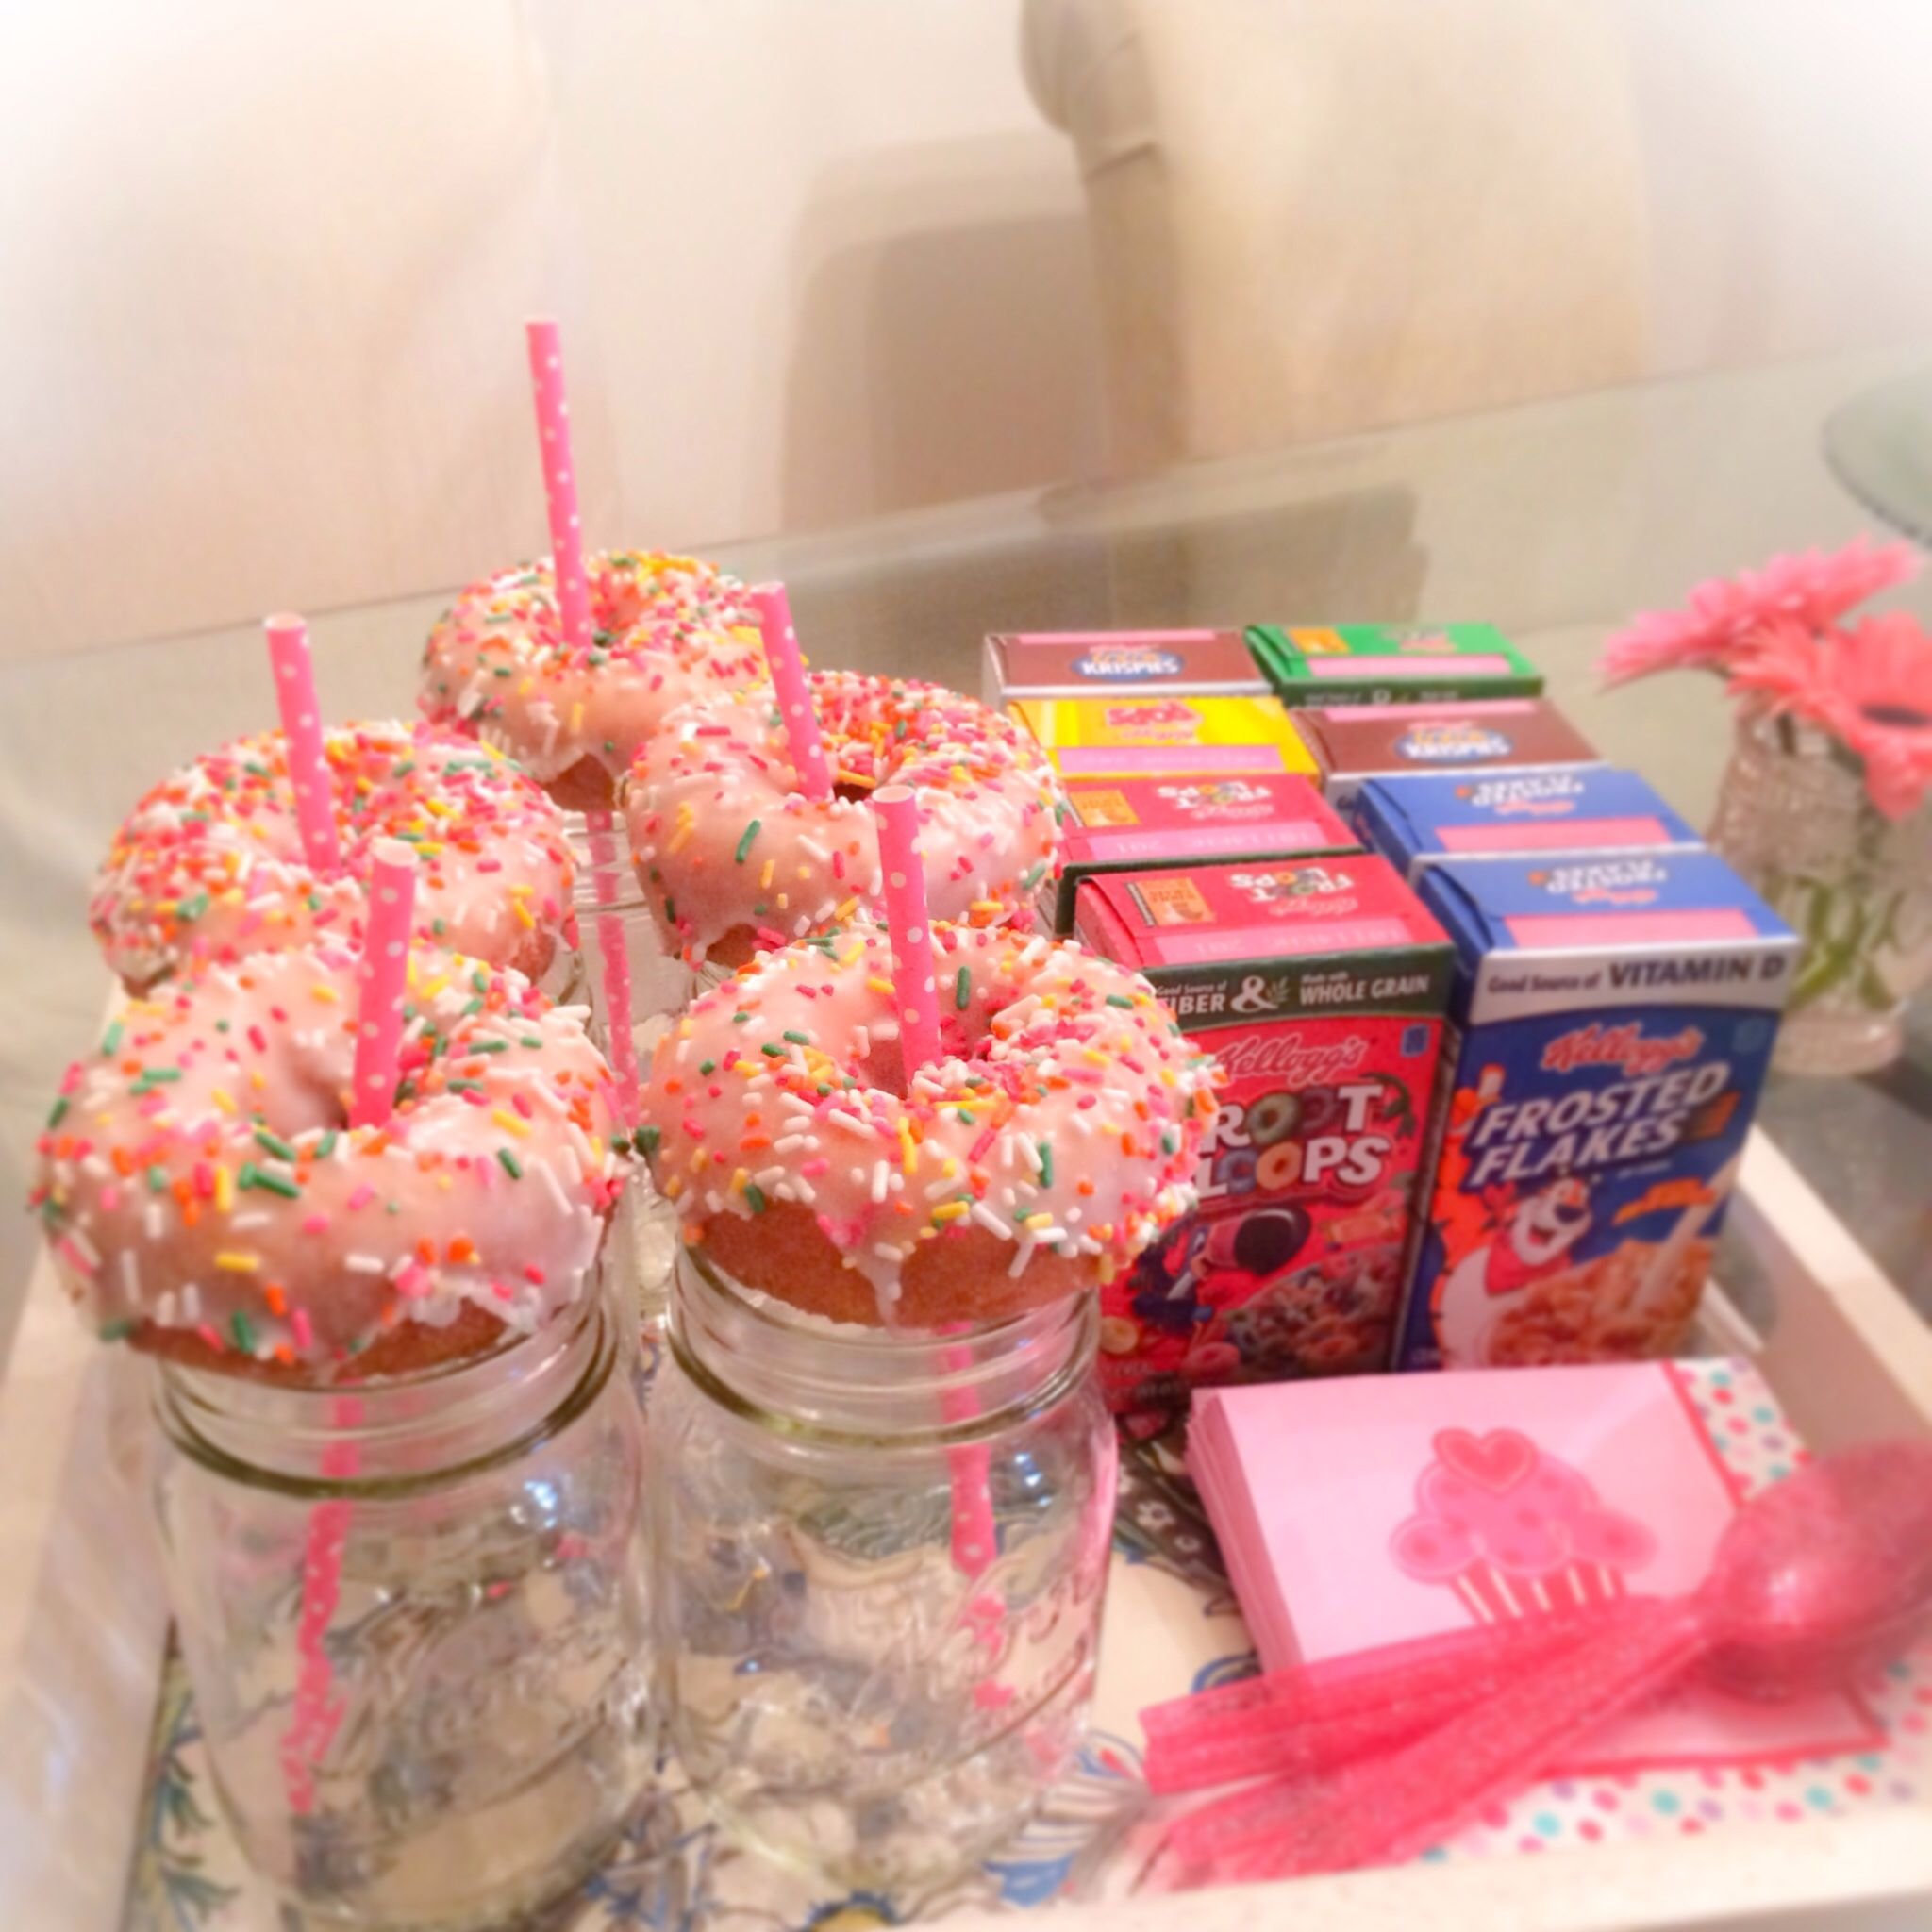 Best two ideas for teen birthday hidden camera